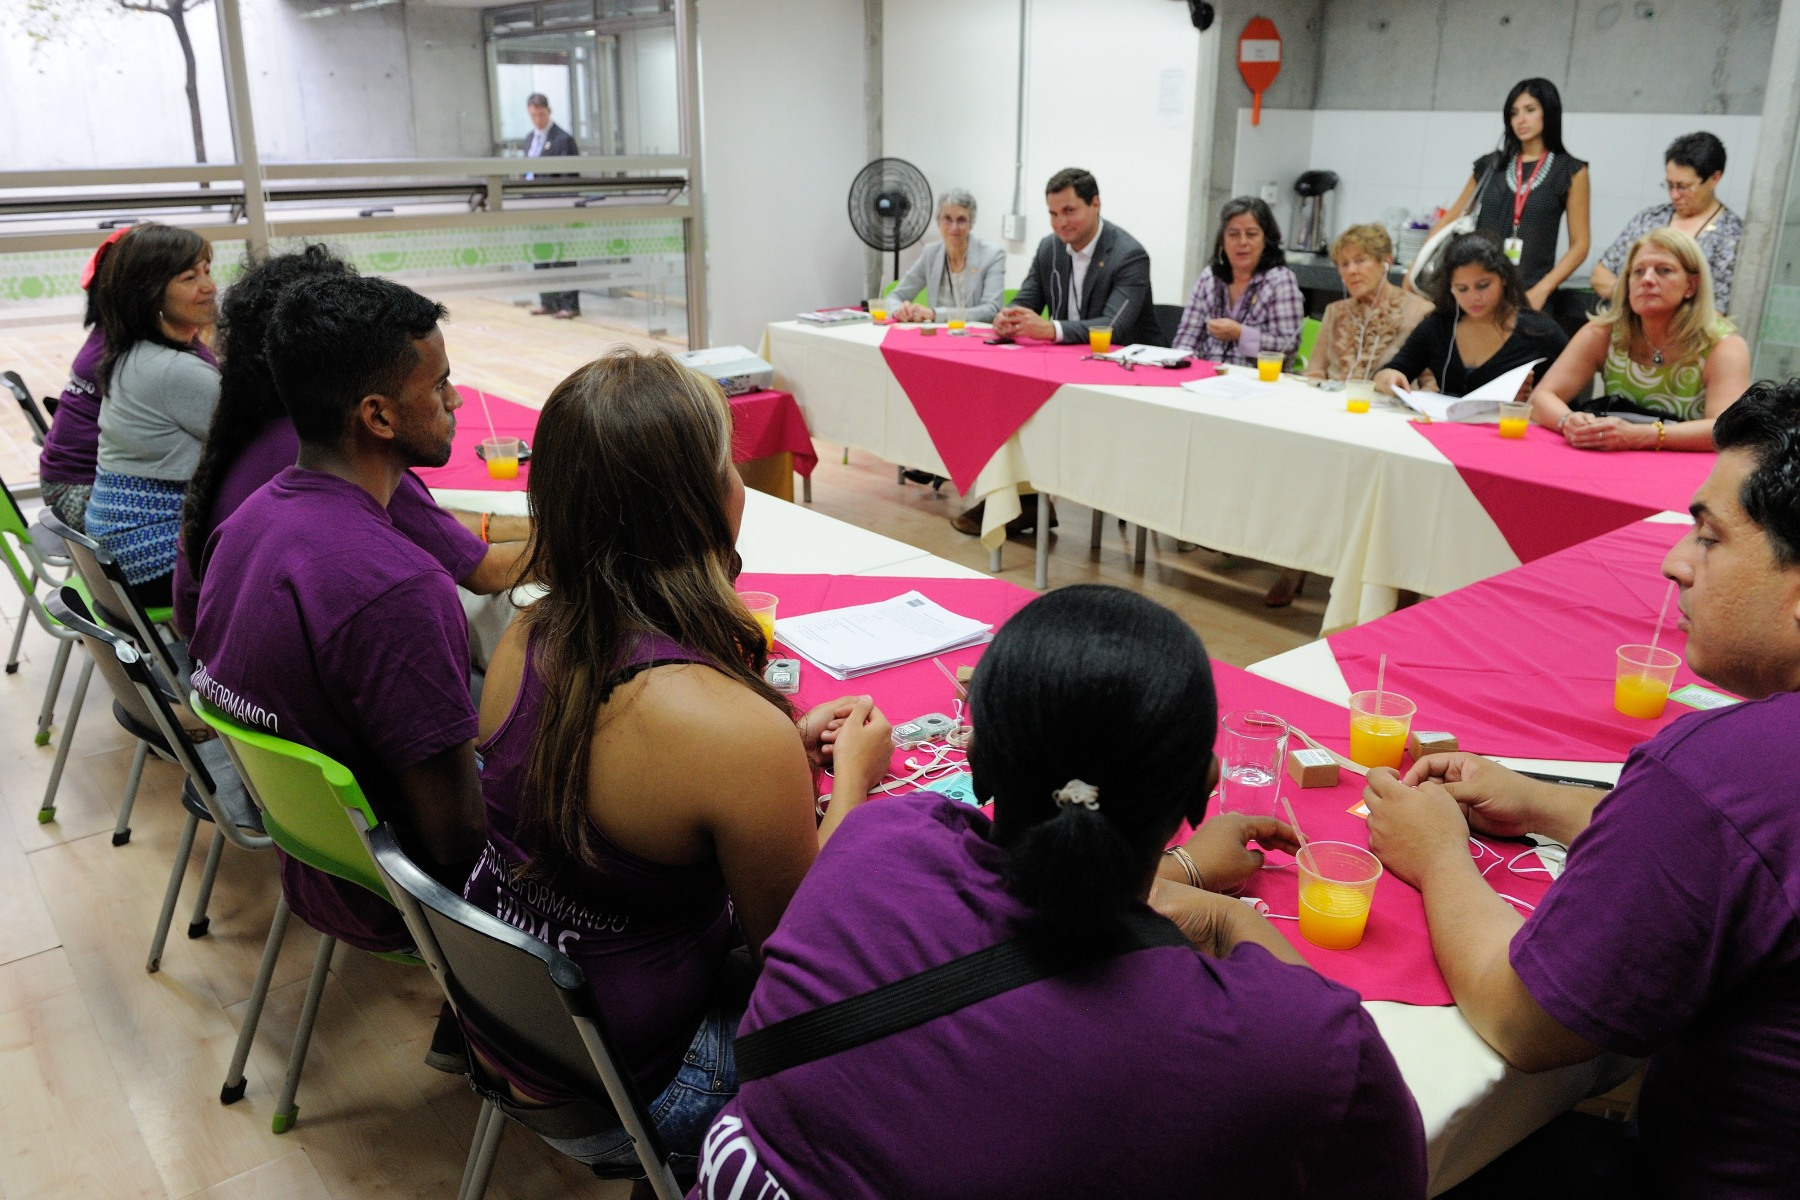 The YMCA of Greater Toronto has worked with ACJ-YMCA Medellín since 1992, to promote health, basic education and skills development for the youth of Comuna 13, an unplanned settlement in west Medellín.